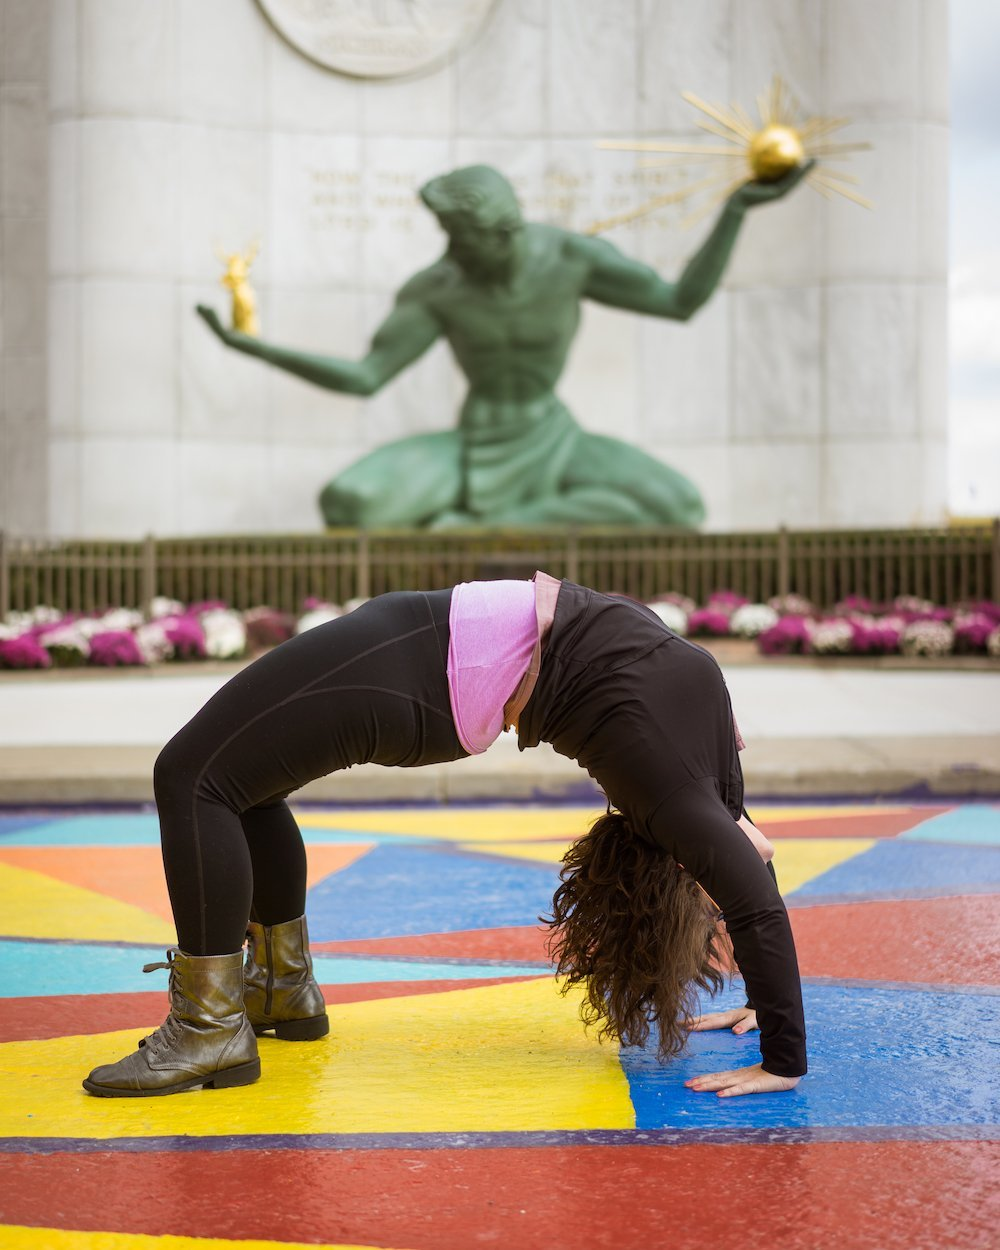 Lindsay Madison in a back bend in front of the spirit of detroit statue